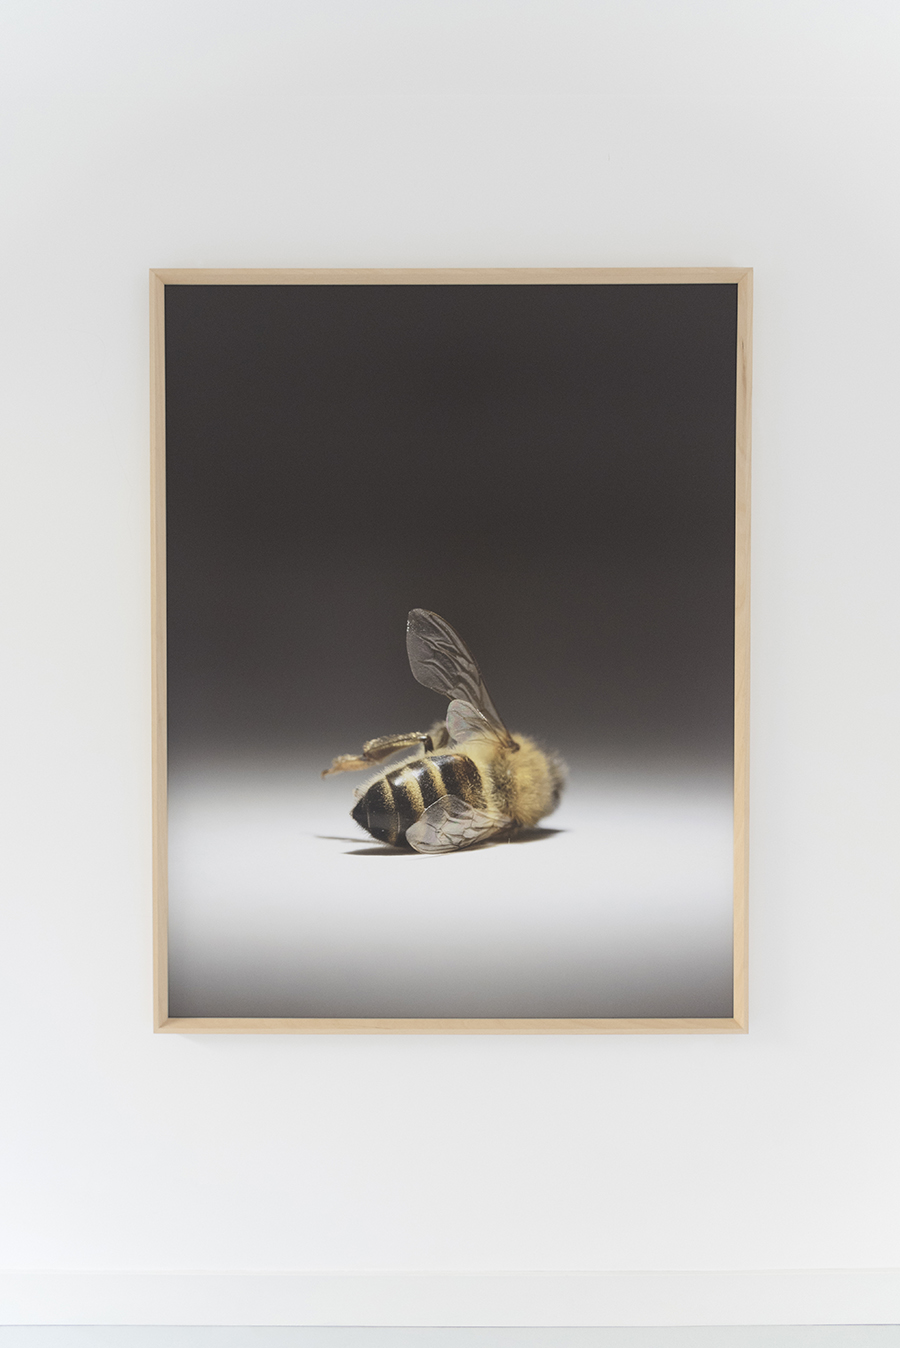 """Martyr   Year : 2017  Materials : Digital print on Canson Platine Fibre Rag, 310grams, framed and mounted on 2mm Dibond  Dimensions :165 x 128 cm  Edition :3 signed pieces / SOLD OUT  Photo : Studio Libertiny  This carefully composed large photograph is of a dead honeybee that I found in front of a beehive. The image is both symbolic and literal. The death, slow and gentle, is played out on a theatre stage. There is no blood, no sign of old age. The bee, which could be sleeping, is anonymous as its face is turned away from the audience. It does and it will imply many themes such as sacrifice or raise a question of fate and predestination. However, as it is with current political turmoils, the victims are always the hardworking and the innocent. Just like the famous painting The Death of Marat by Jacques-Louis David, the photo doesn't show the murderer. Our Charlotte Corday is ignorance. In another suddle reference, the photo has exactly the same dimensions as the original painting hanging in Musee Louvre and Royal Museums of Fine Arts of Belgium. The fragility of life and nature couldn't not be more obvious. Today, there are still loud political figures who deny the scale of global warming is a result of human activity despite all the evidence. The truth has become a matter of an opinion. Everybody seems to quote Albert Einstein on what he said about bees. However, he also said: """"Two things are infinite: the universe and human stupidity; and I'm not sure about the universe."""" The artwork also appeared on the cover of TL Magazine issue 26 in collaboration with Spazio Nobile."""